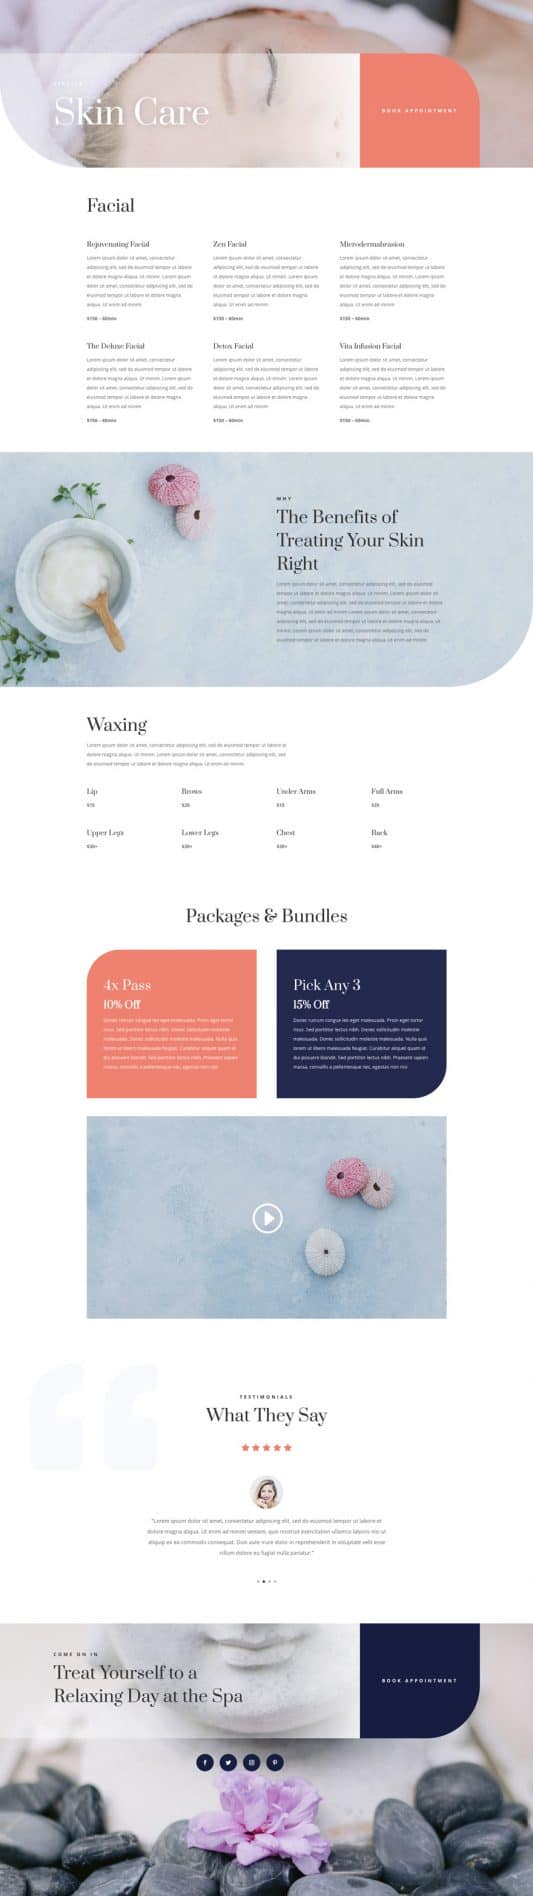 Day Spa Service Page Style 1